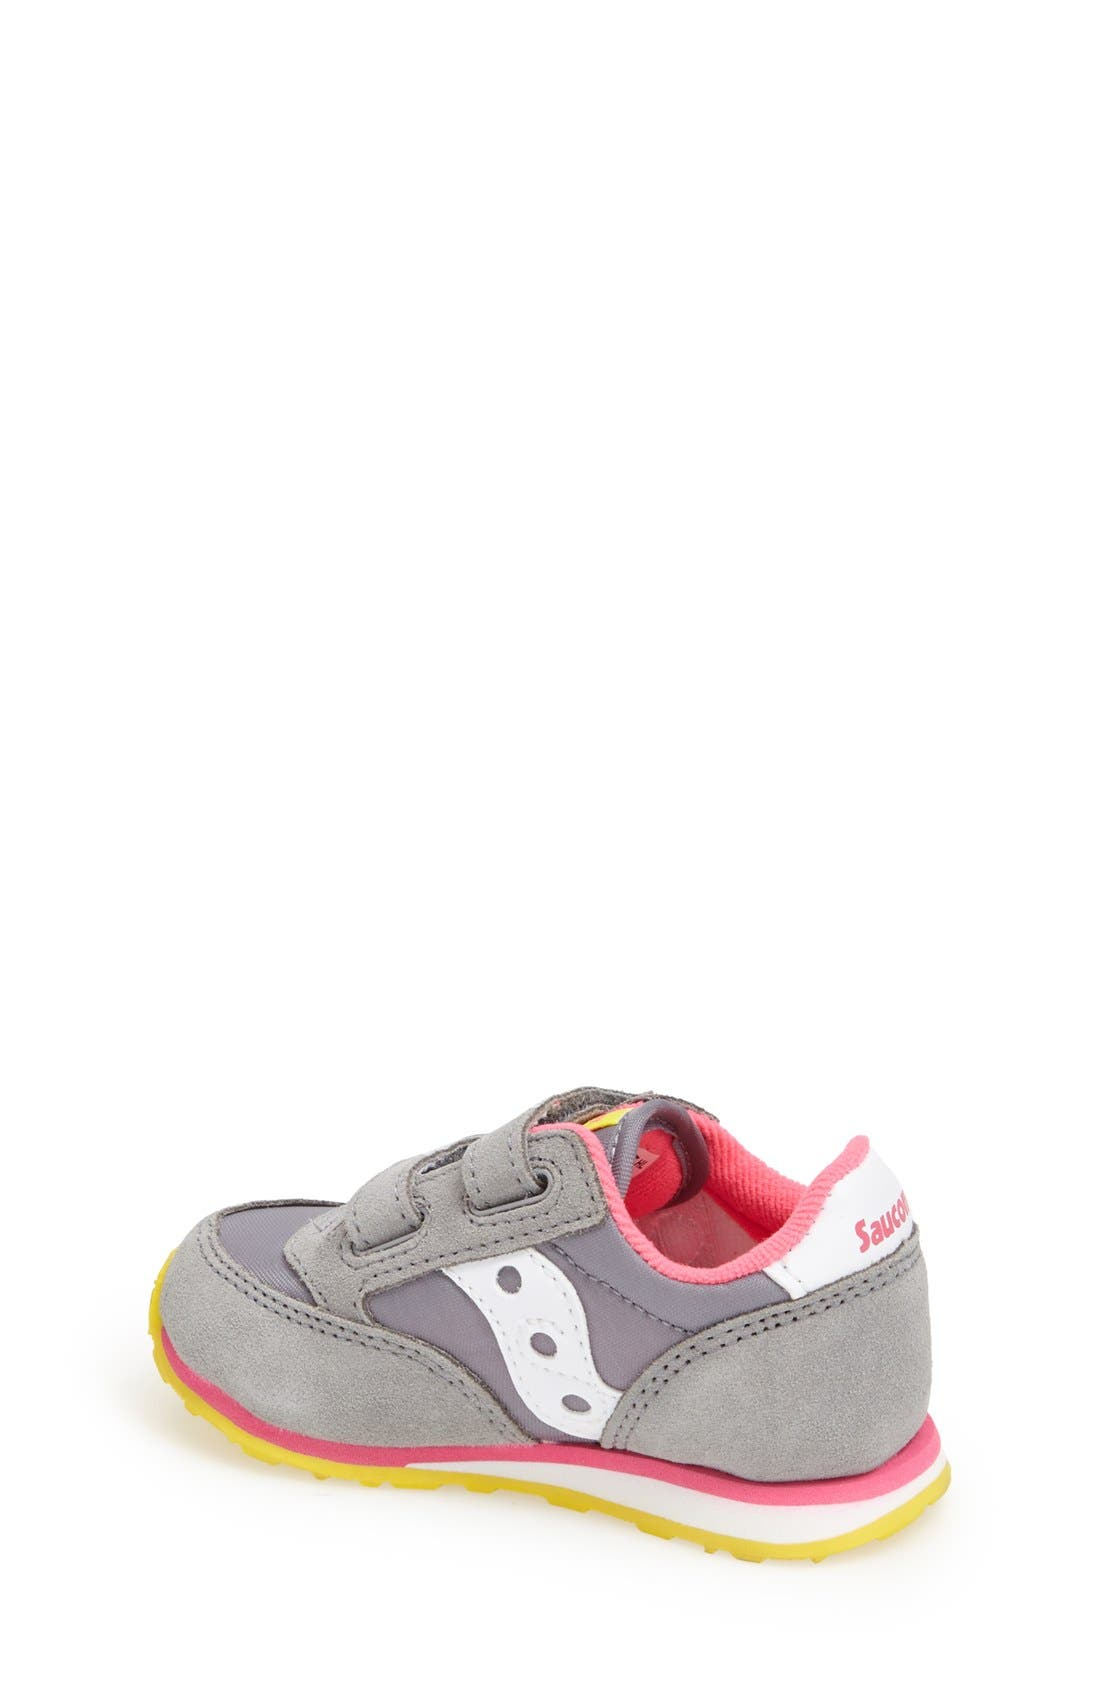 Alternate Image 2  - Saucony 'Jazz' Hook & Loop Sneaker (Baby, Walker & Toddler)